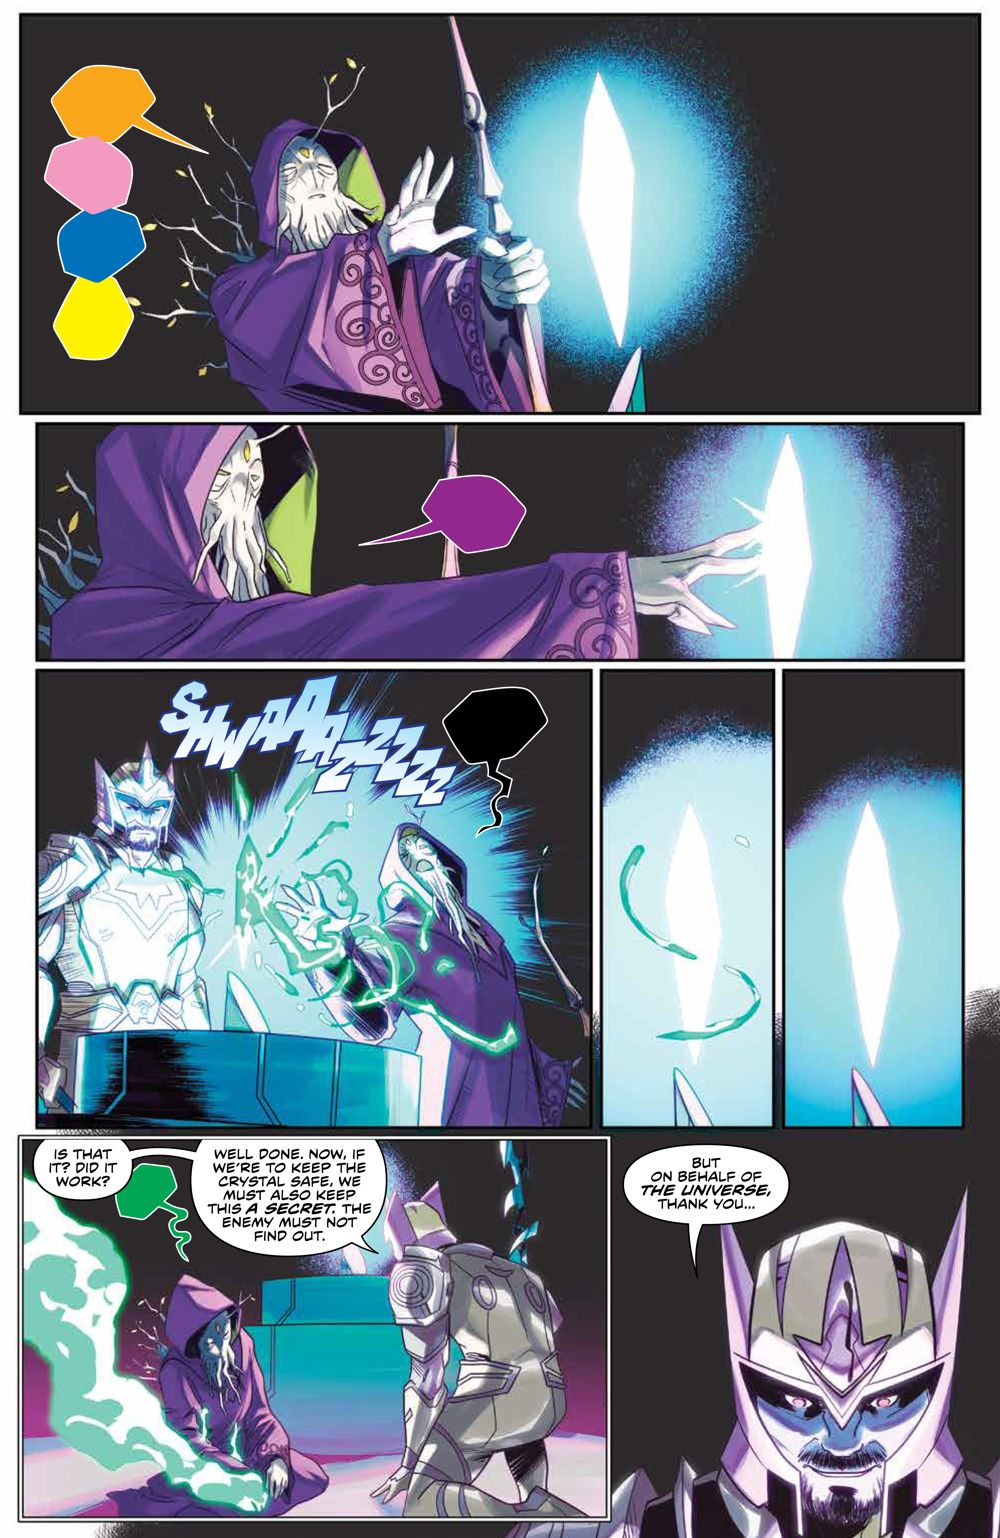 Mighty_Morphin_009_PRESS_5 ComicList Previews: MIGHTY MORPHIN #9